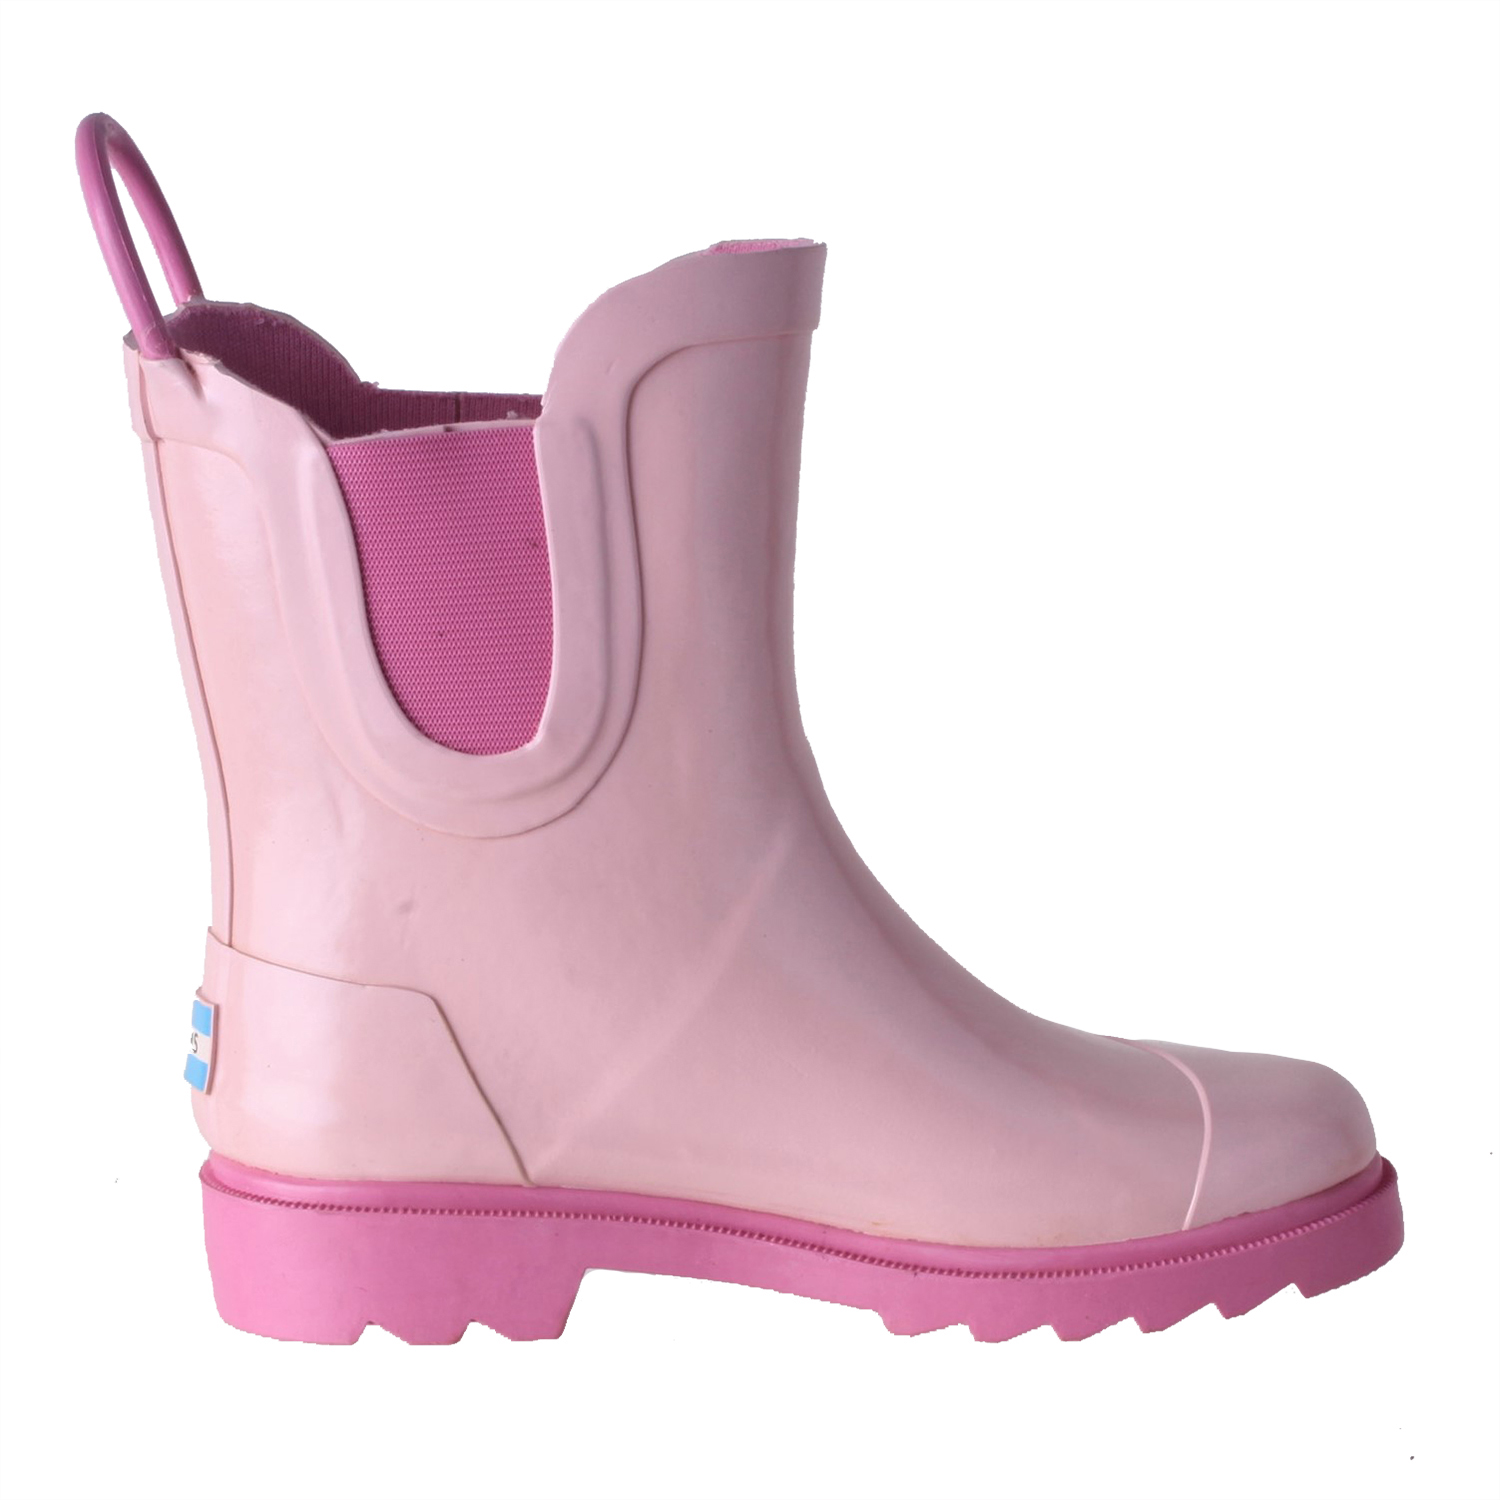 4e2fb76082a Details about Toms Girls Rain Boot shoes Pink Rubber 10003580 Size 6